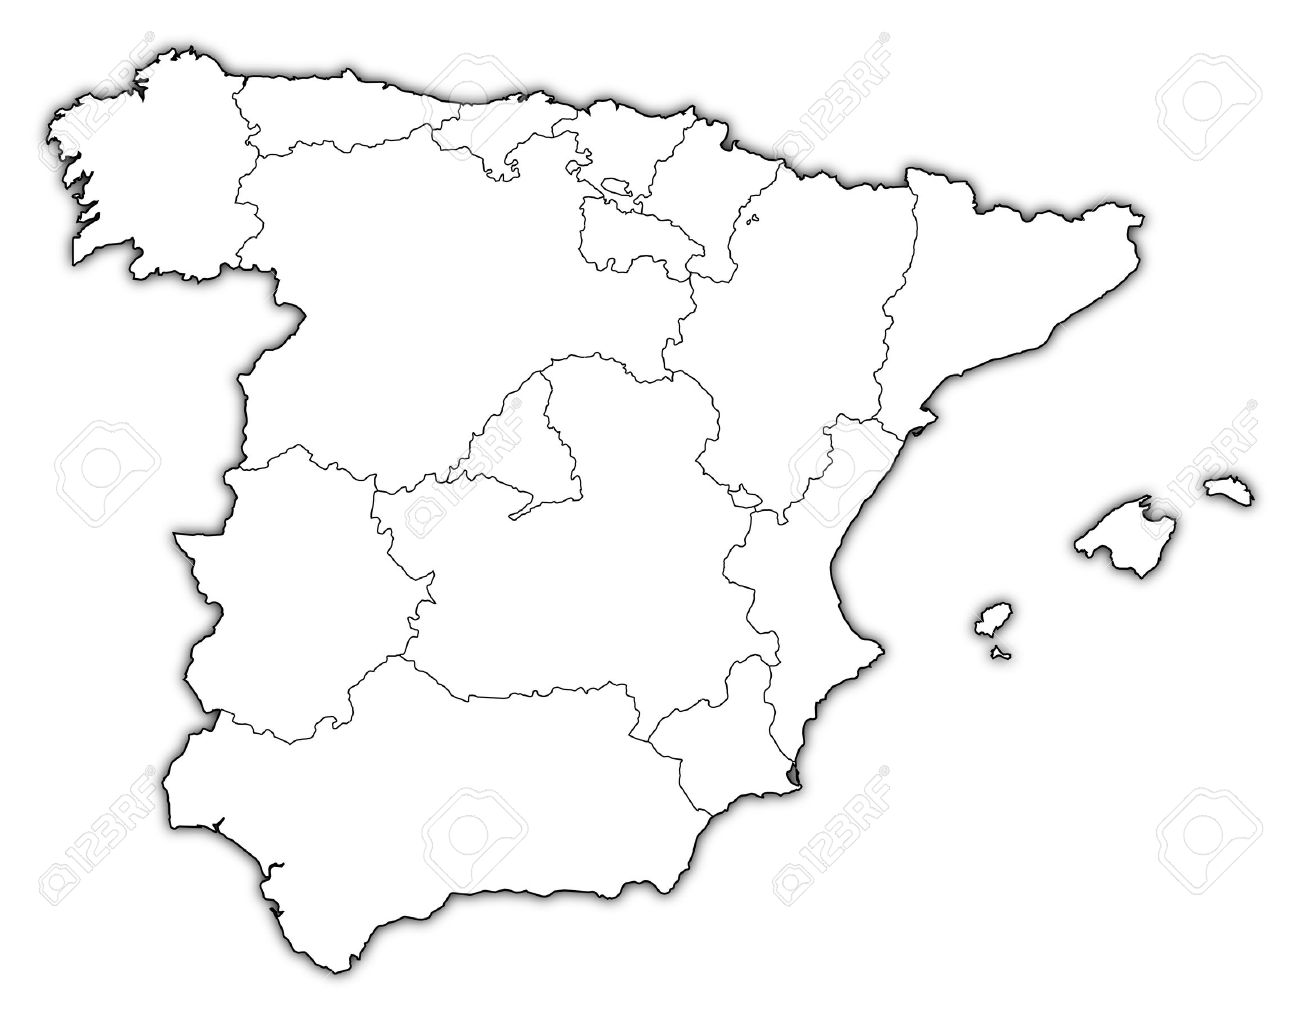 The Best Free Spain Drawing Images Download From 149 Free